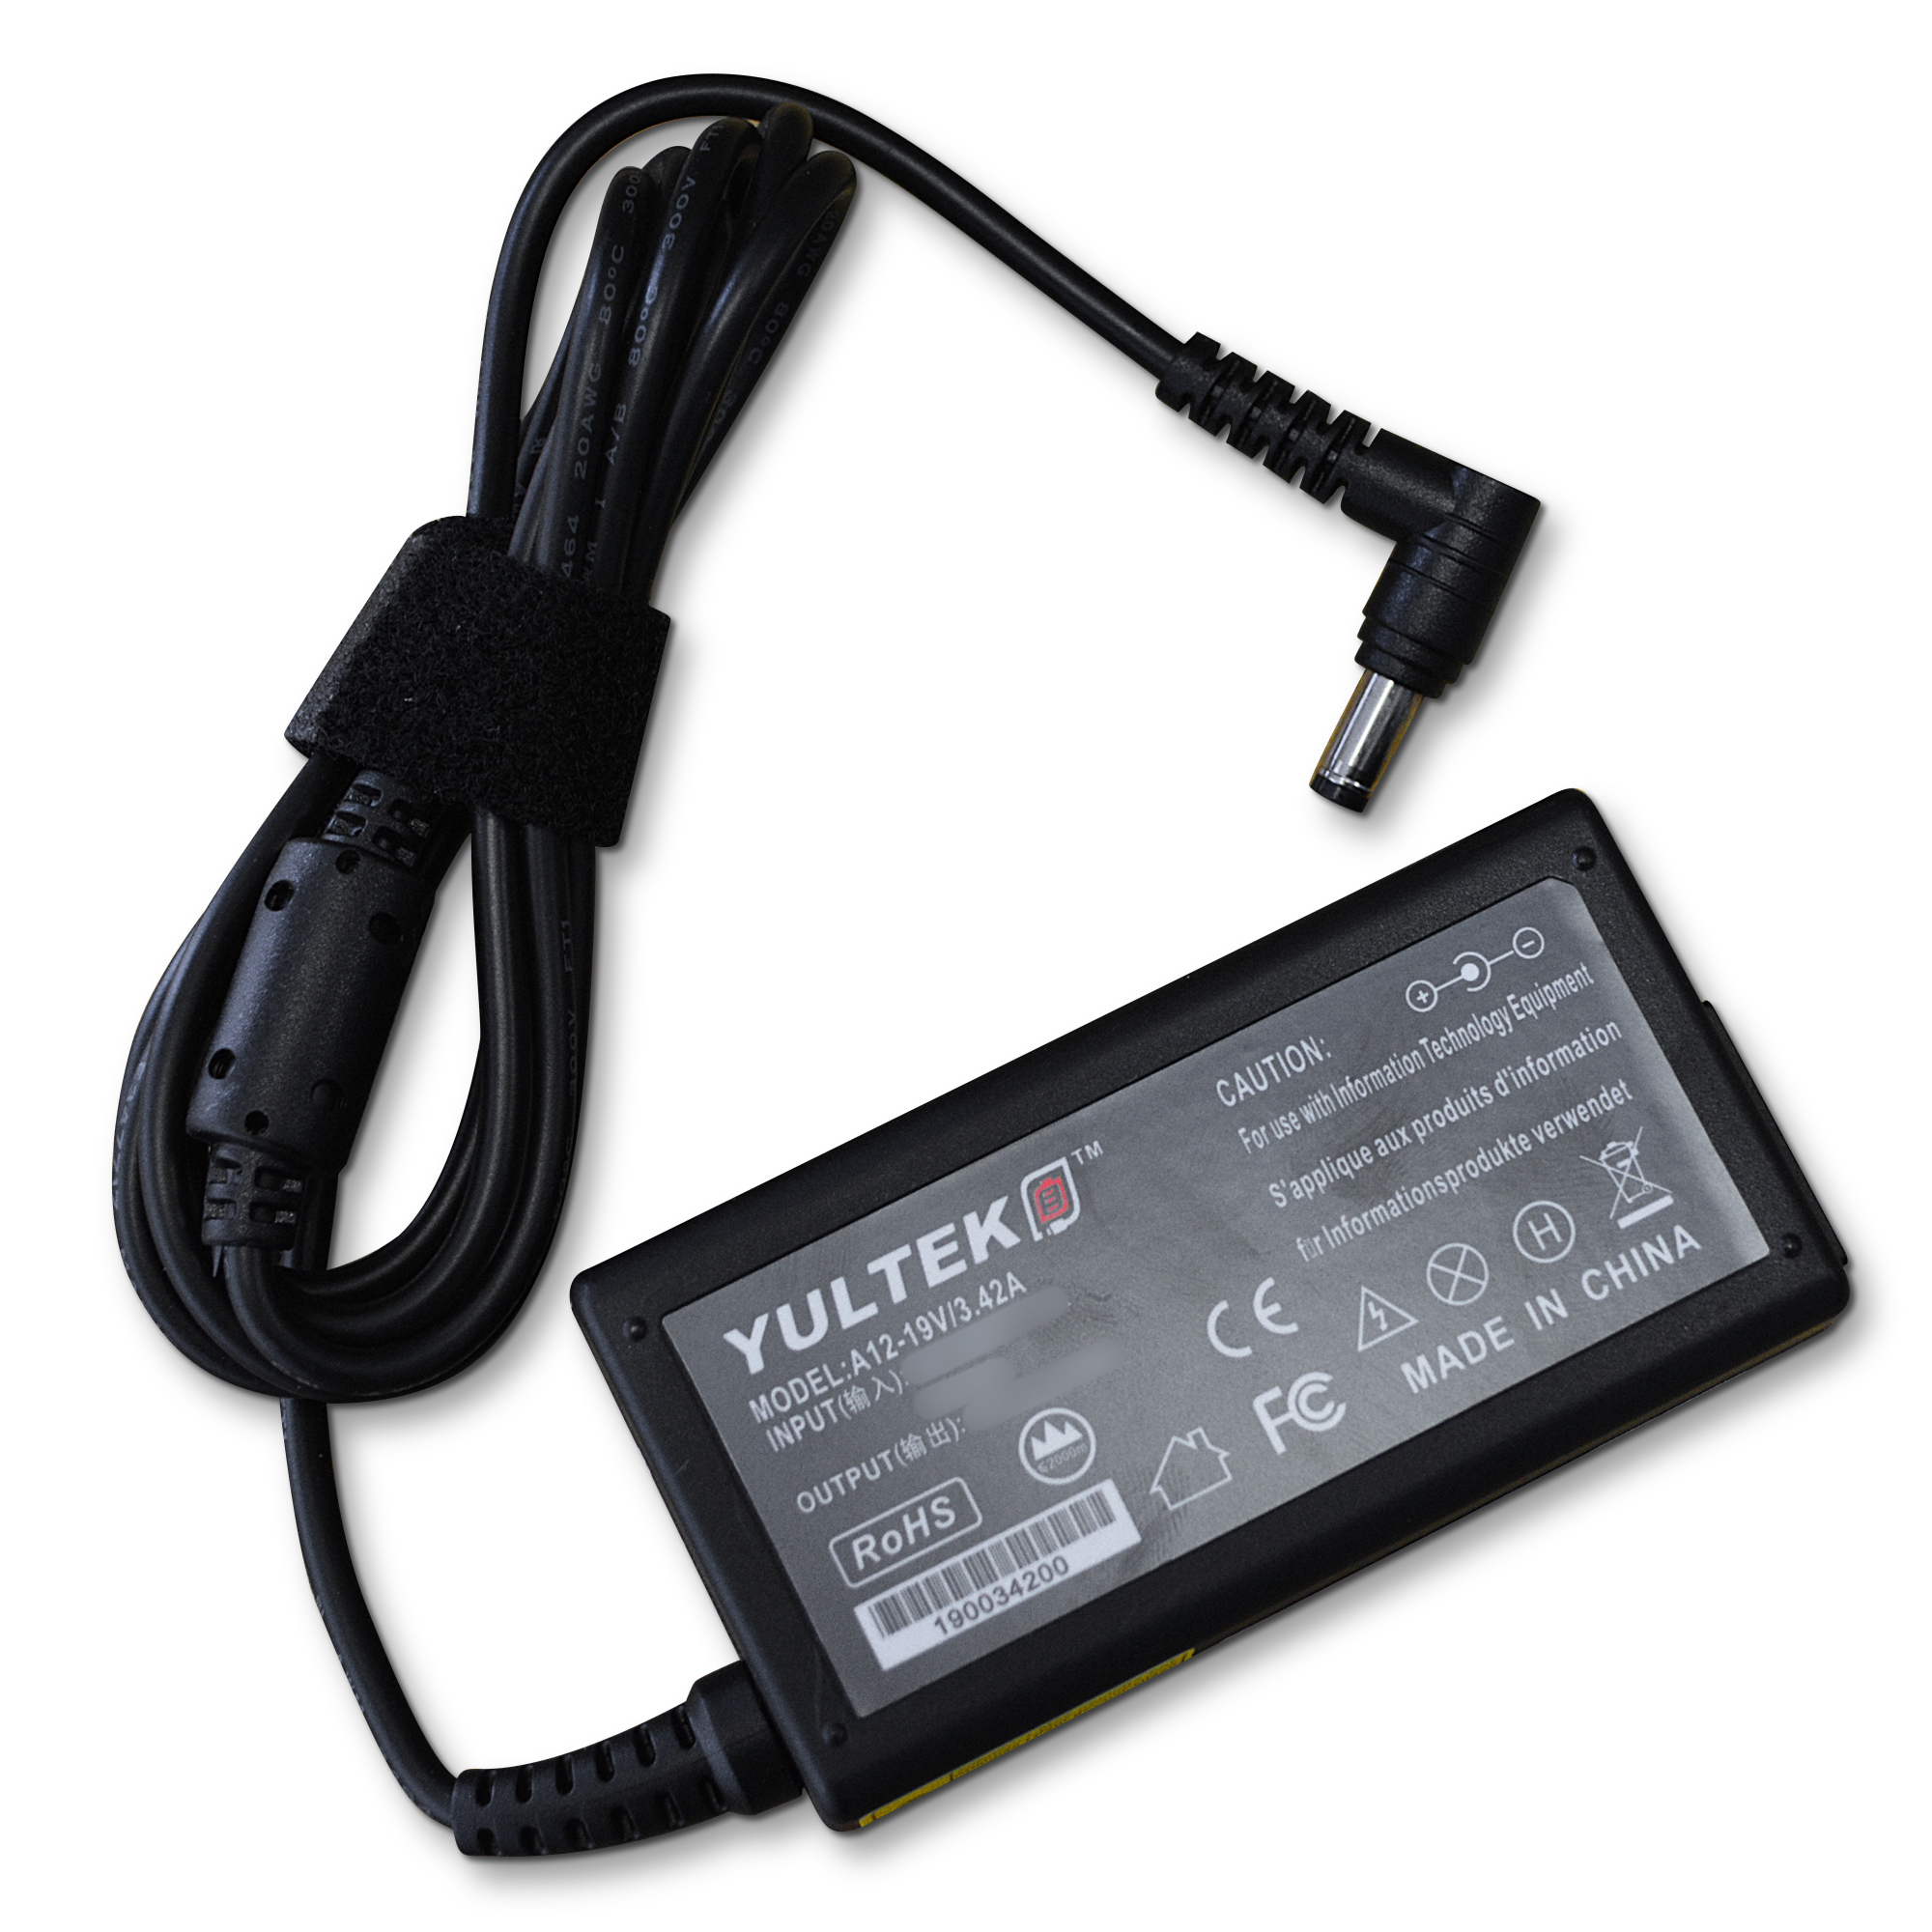 Fujitsu-Siemens Part Number WTS:25.10180.071 Laptop Charger